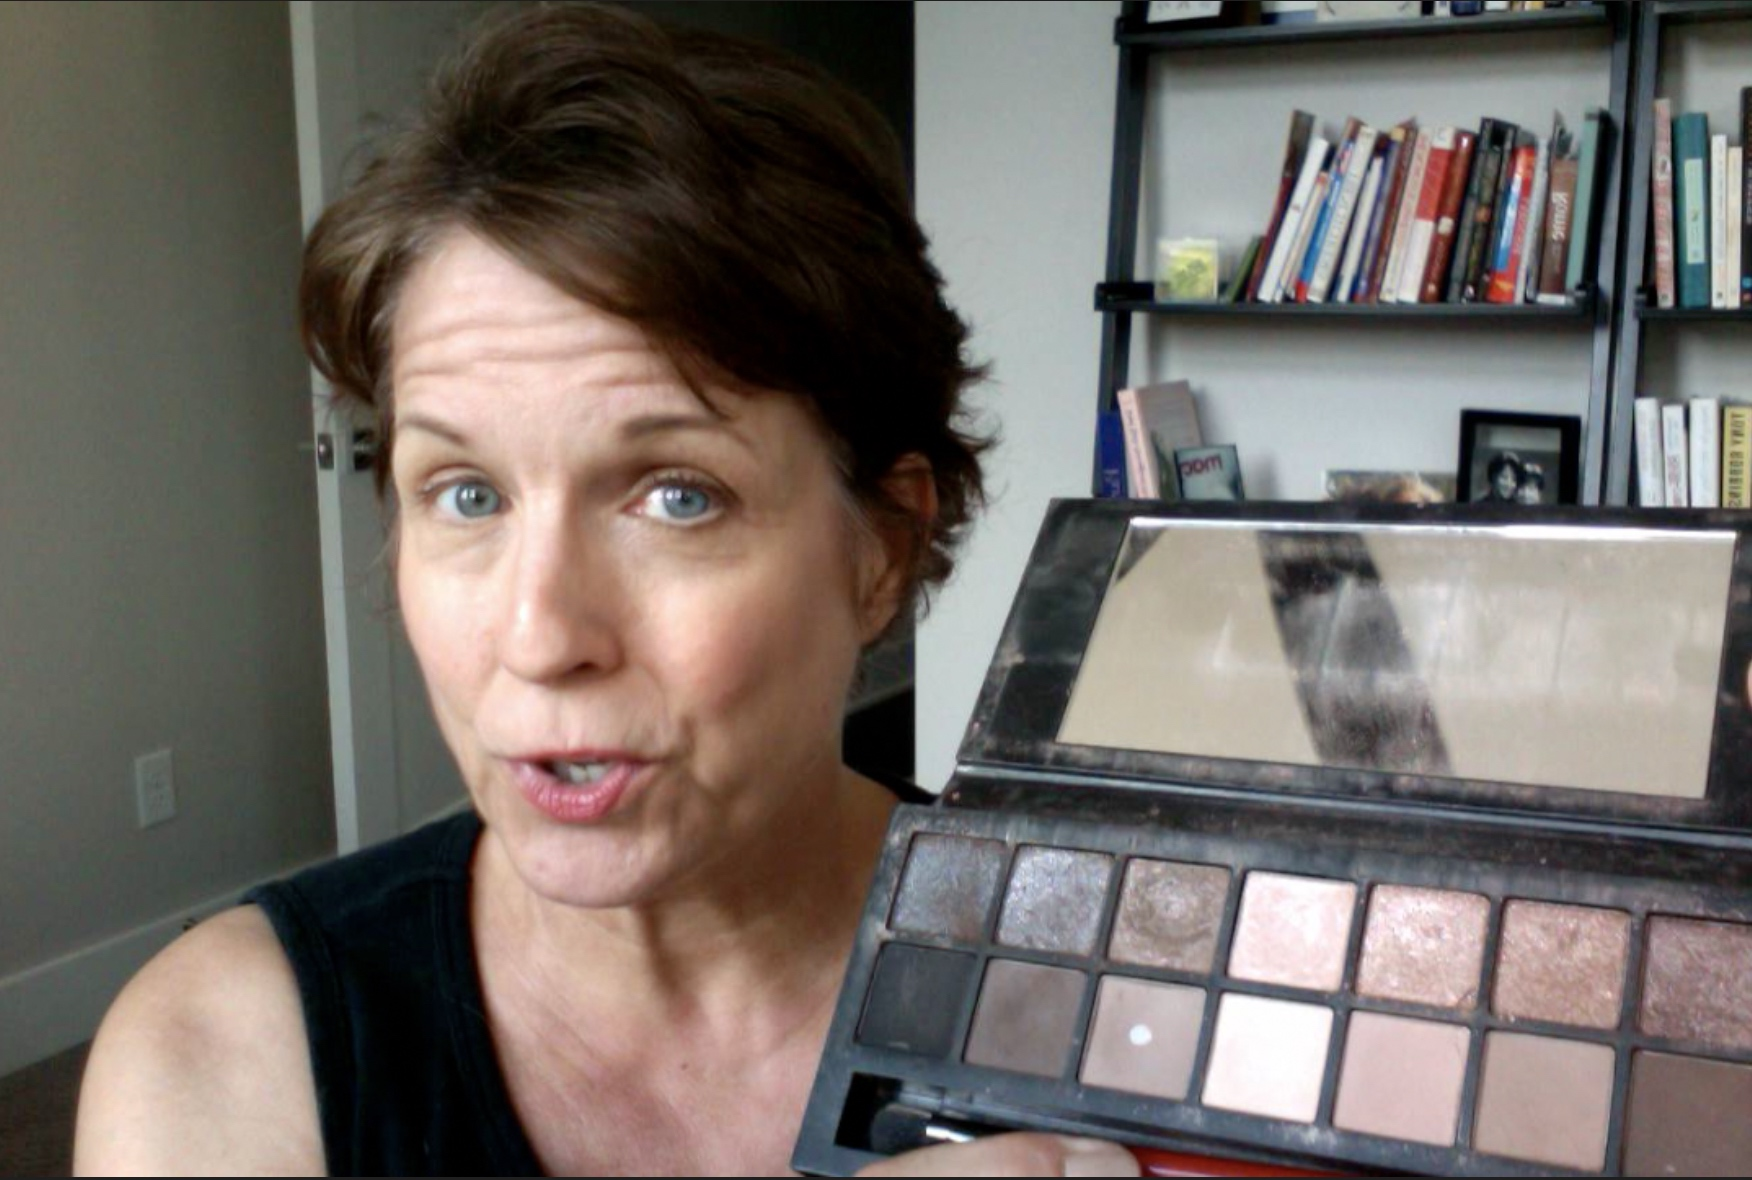 Makeup Chat – Eyeshadow Illusion and the Melting Icecap